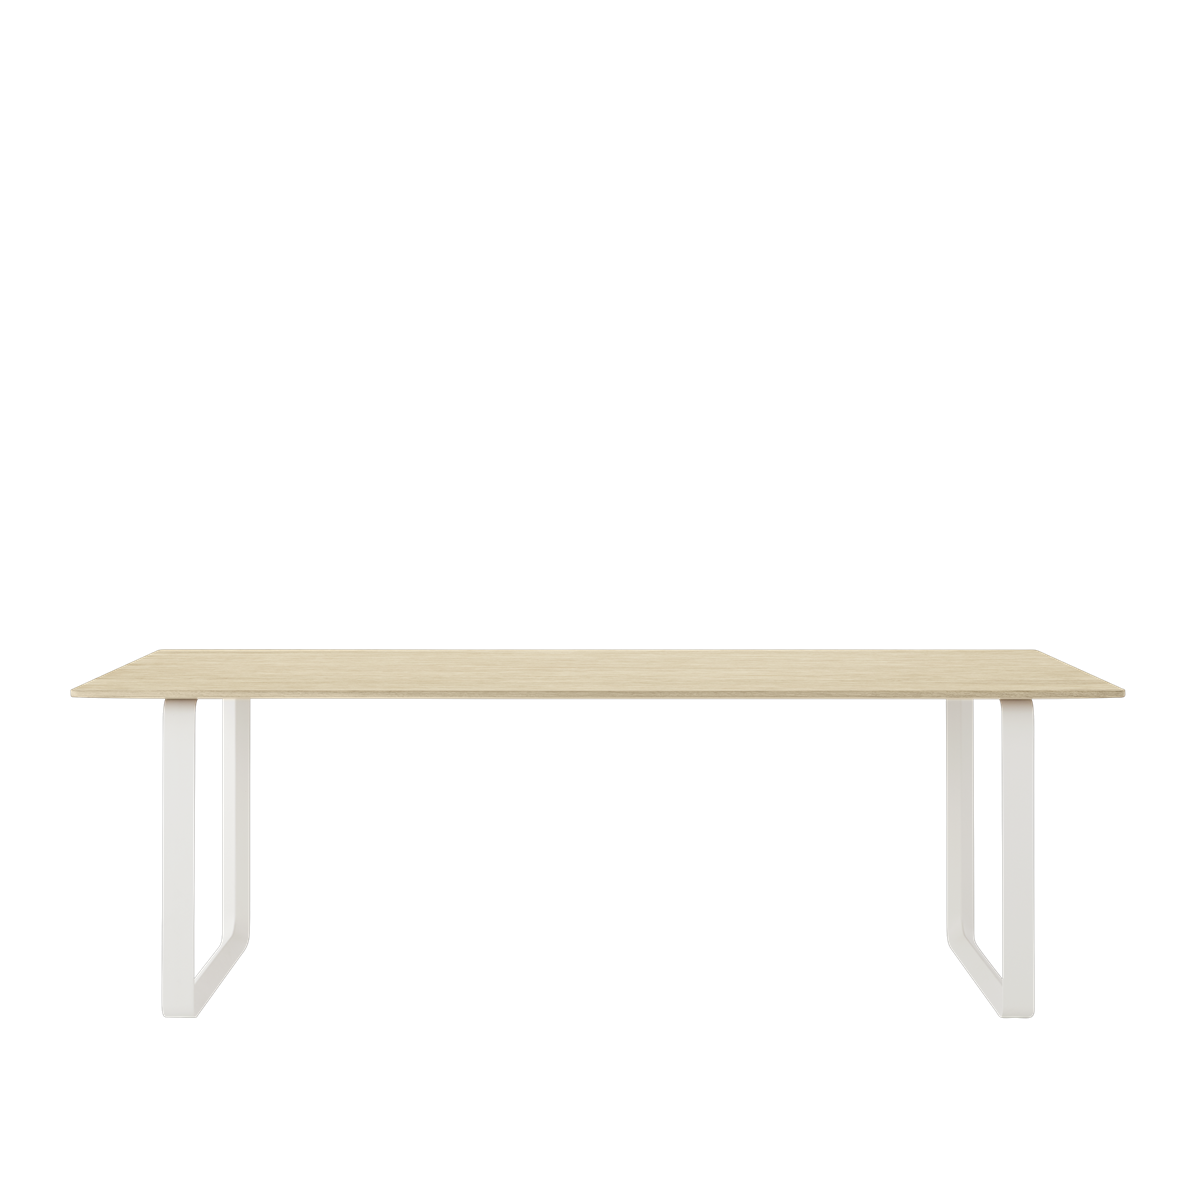 70/70 Table 225 X 90 Cm, Solid Oak / White fra Muuto